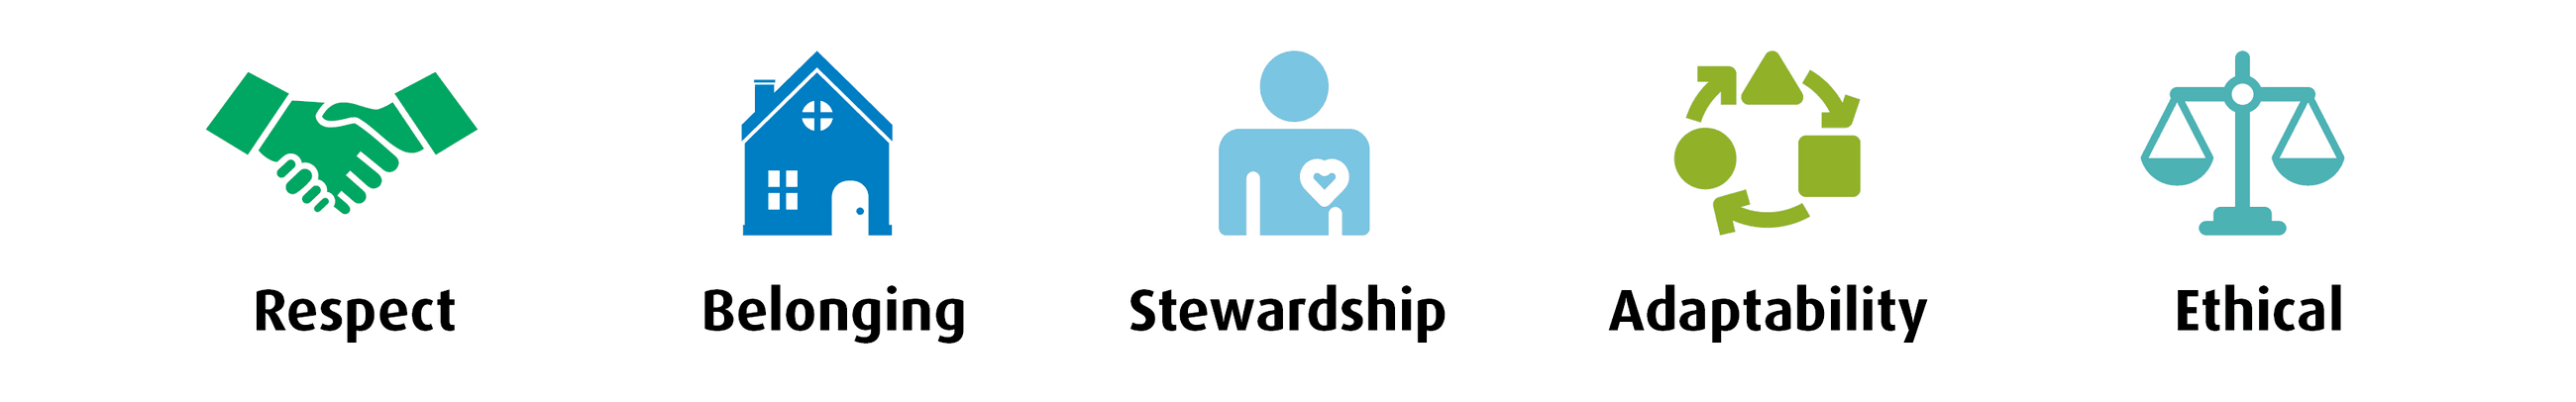 Value icons for respect, belonging, stewardship, adaptability, ethical